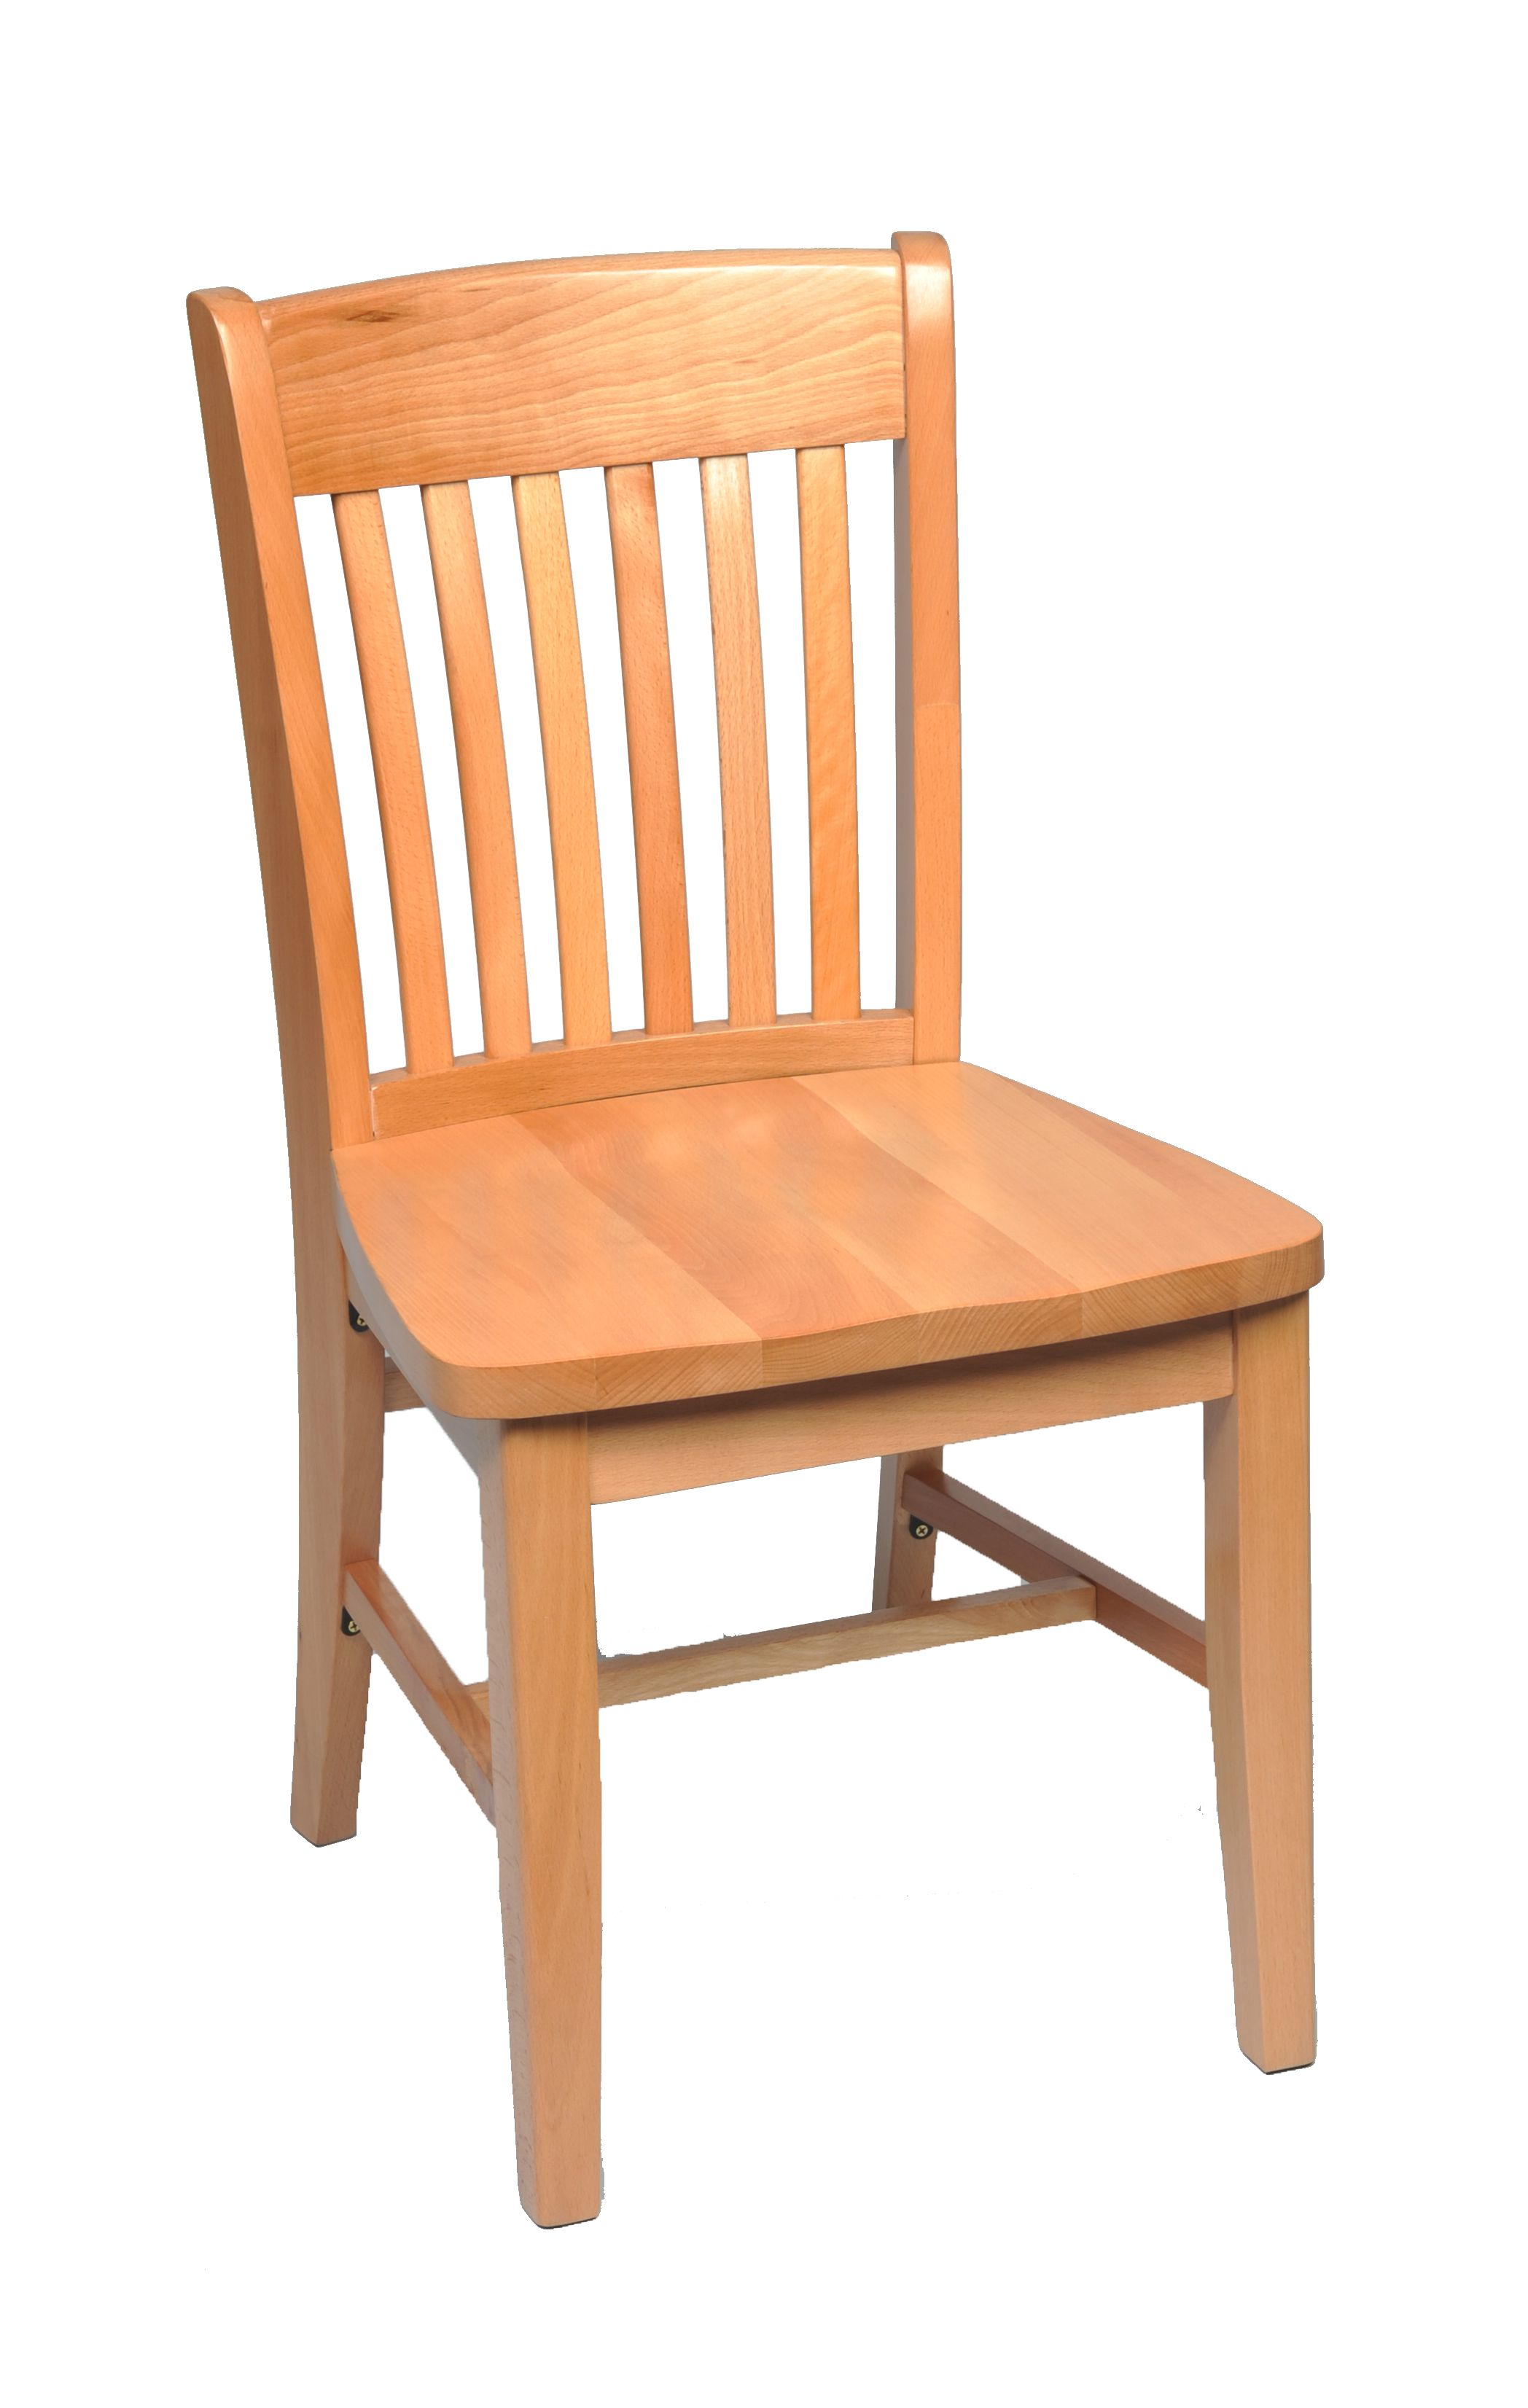 Chair Wooden Solid Wood Dining Chair Schoolhouse Solid Wood Dining